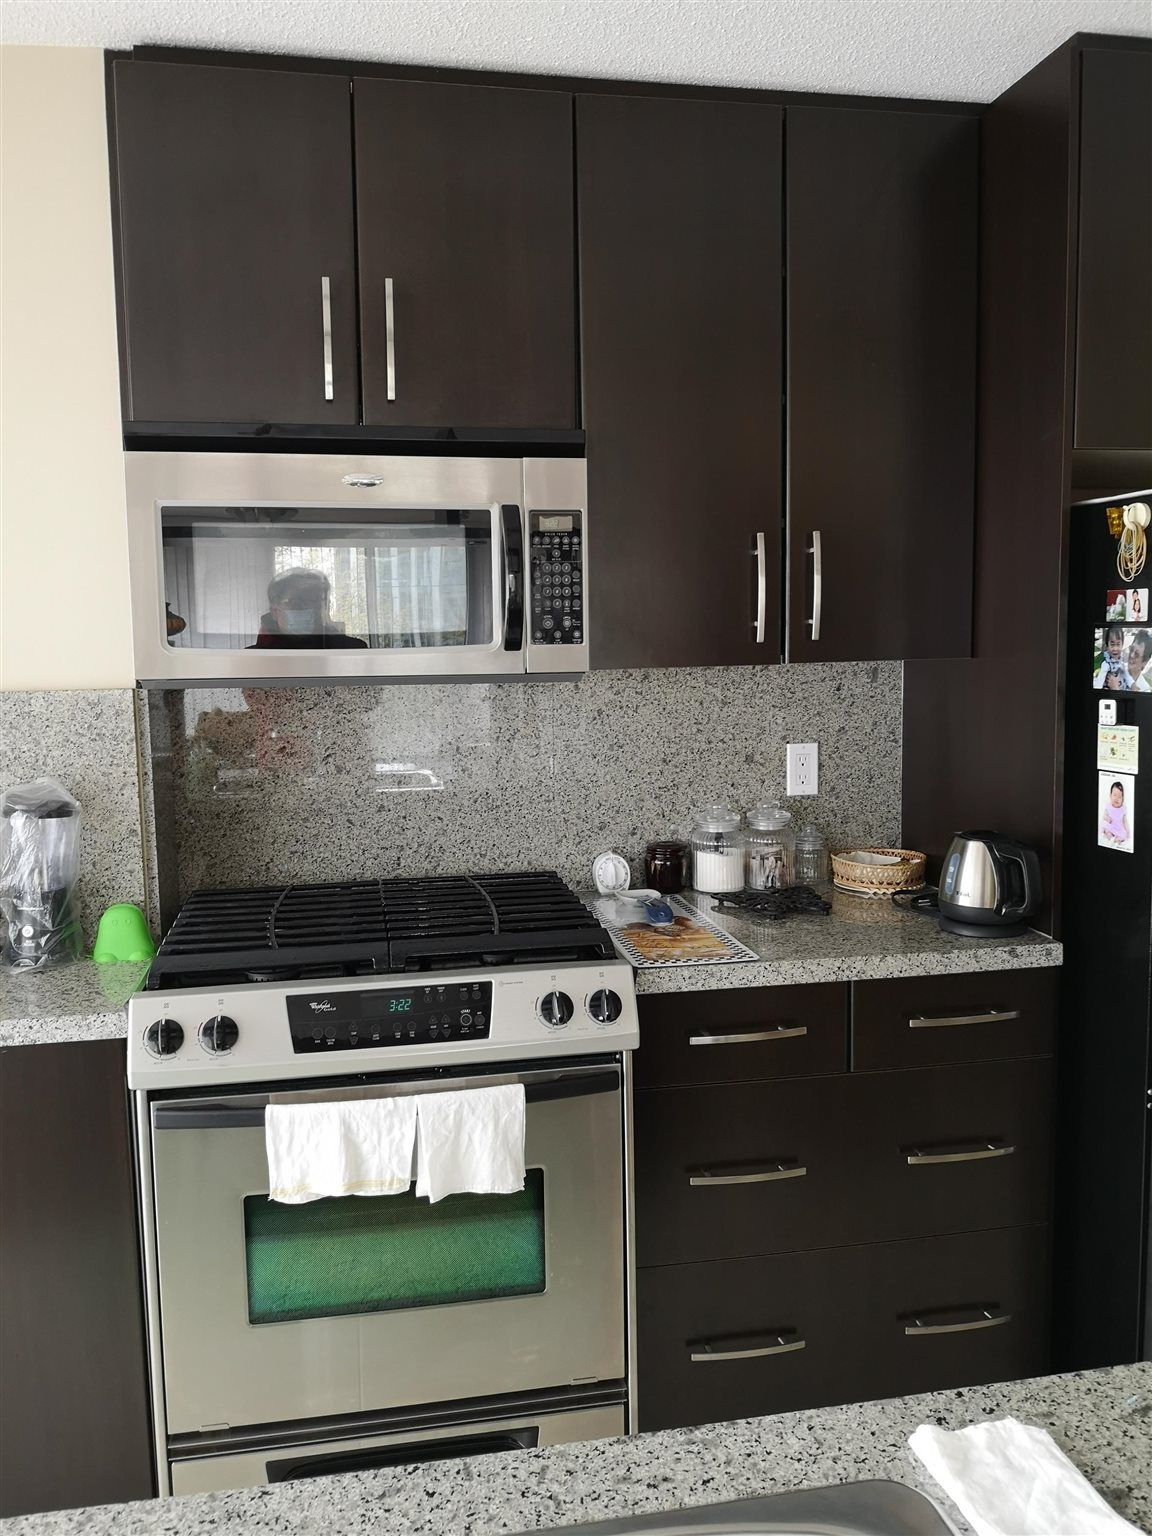 """Main Photo: 508 5088 KWANTLEN Street in Richmond: Brighouse Condo for sale in """"SEASONS"""" : MLS®# R2603989"""